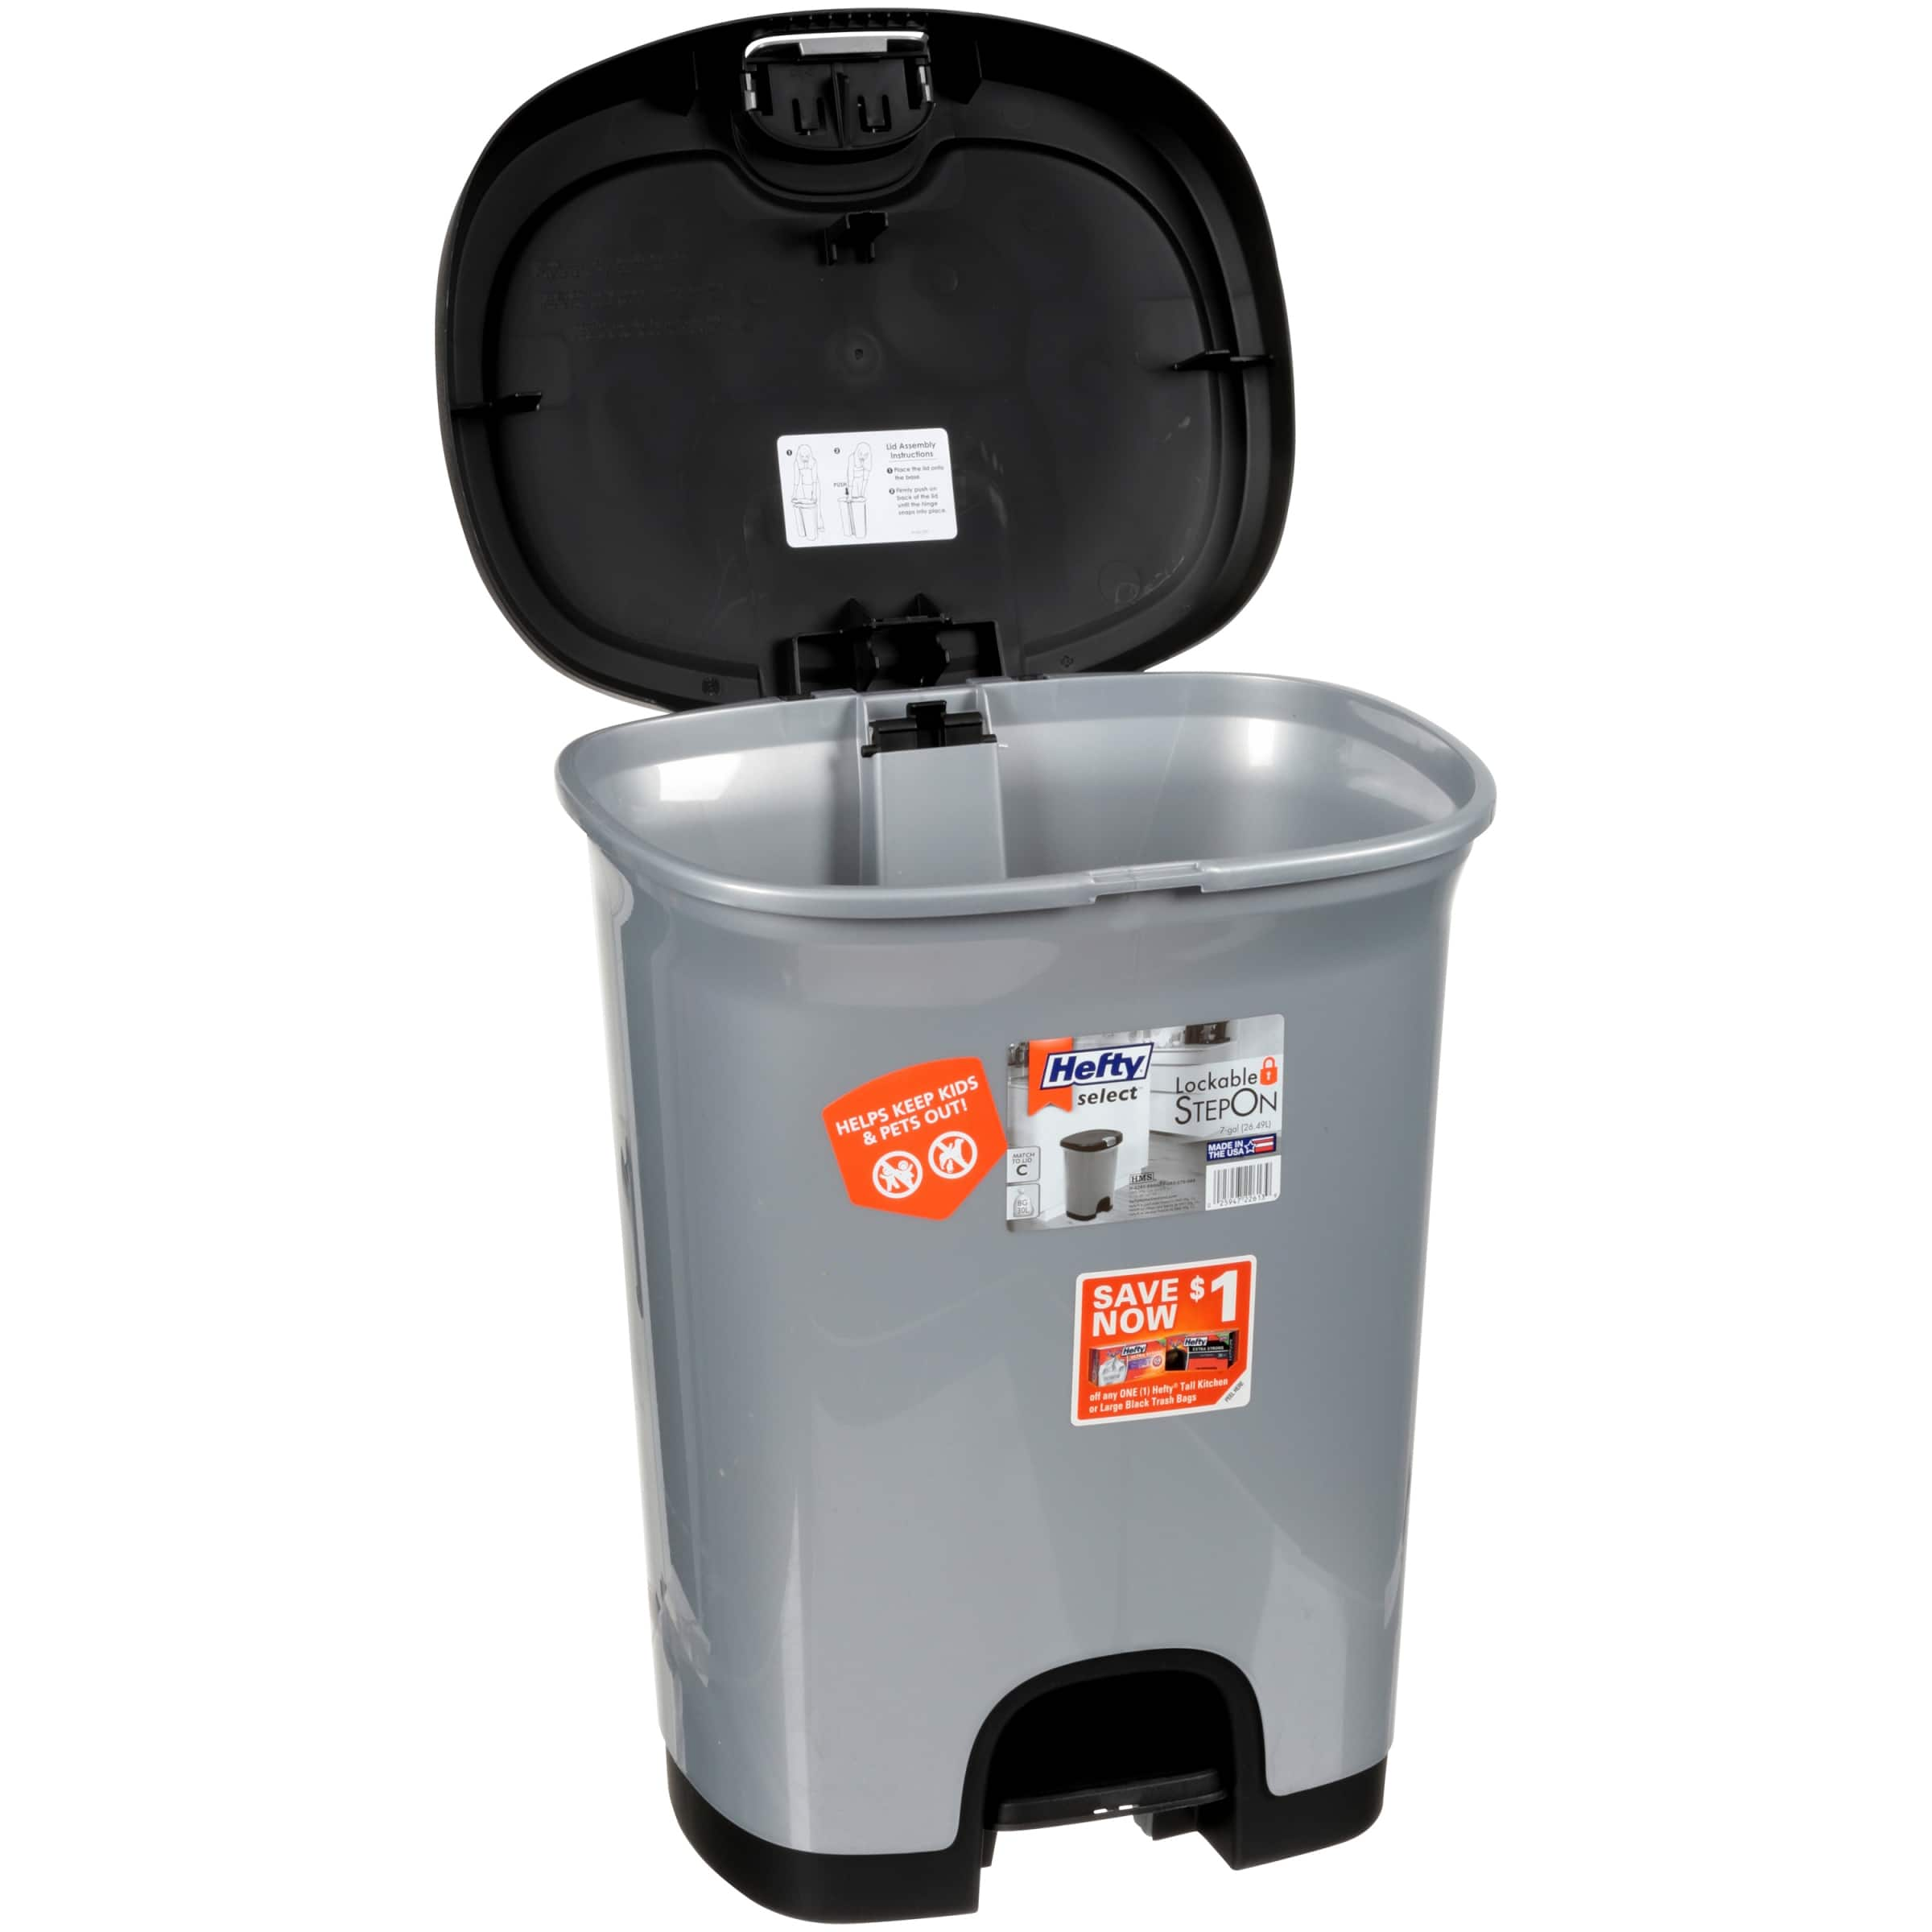 Hefty 7 Gal Textured Step On Trash Can With Lid Lock And Bottom Cap